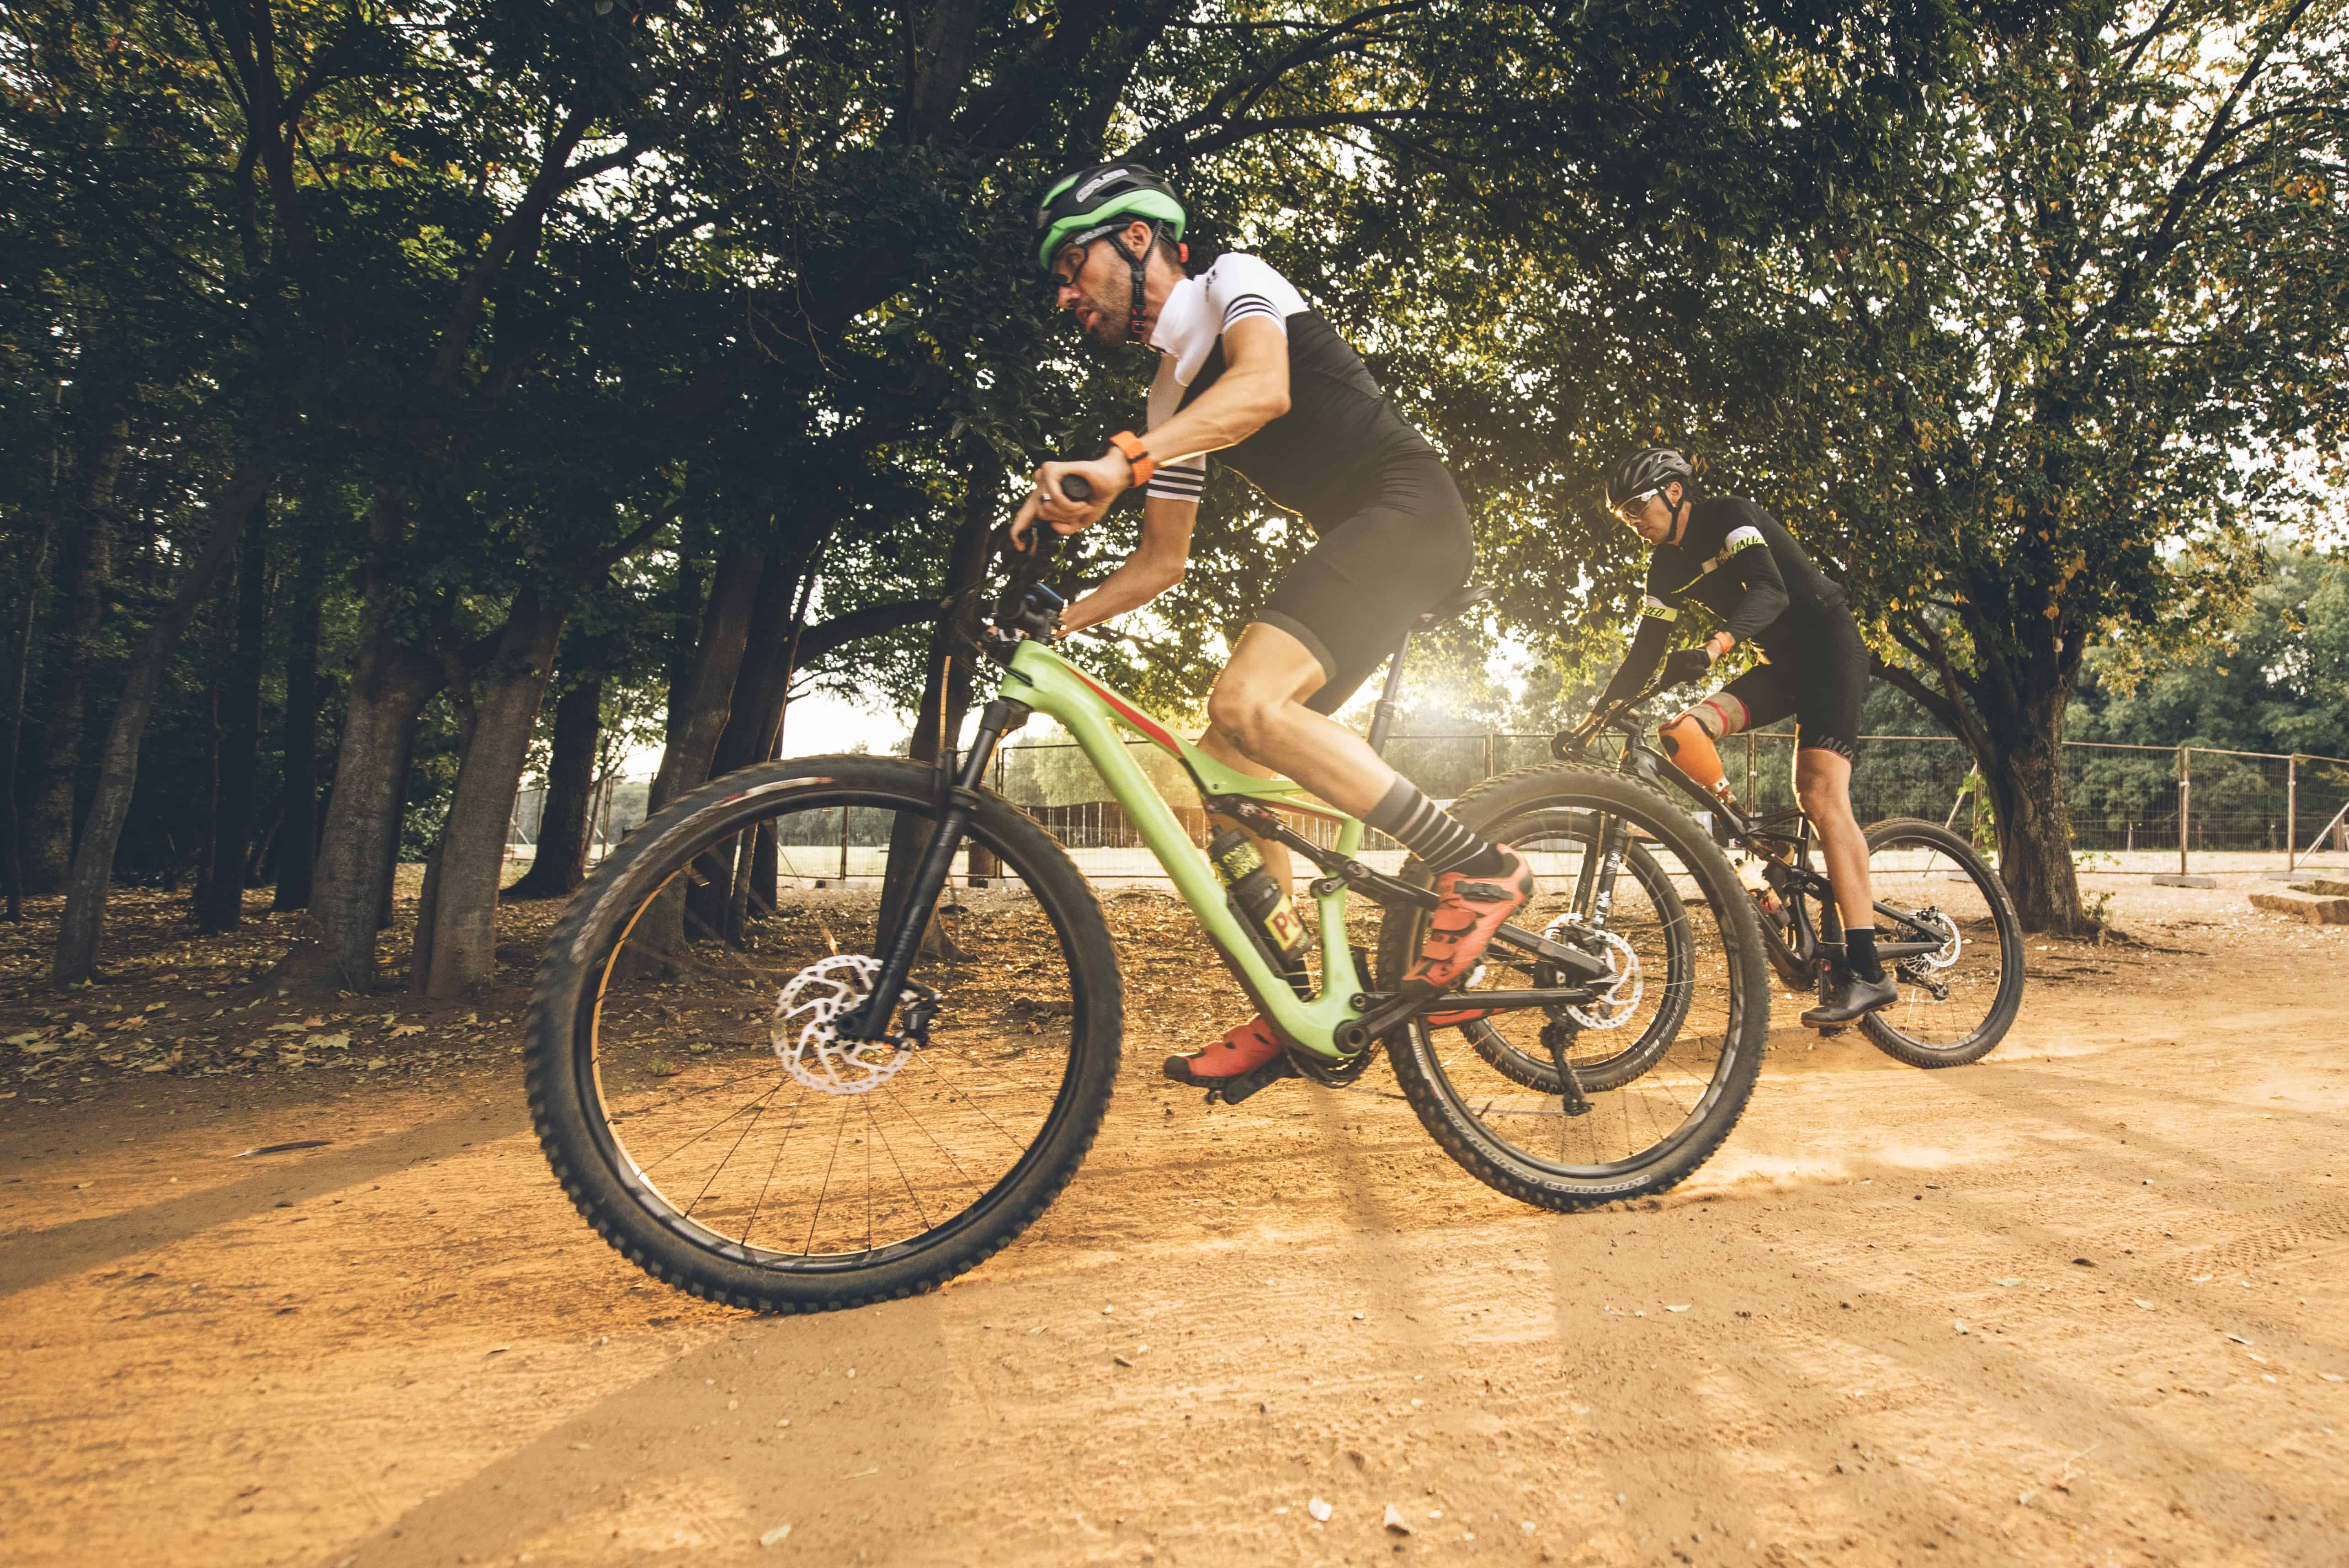 wow-rides-die-spruit-bicycling-magazine-dna-photograpers-38